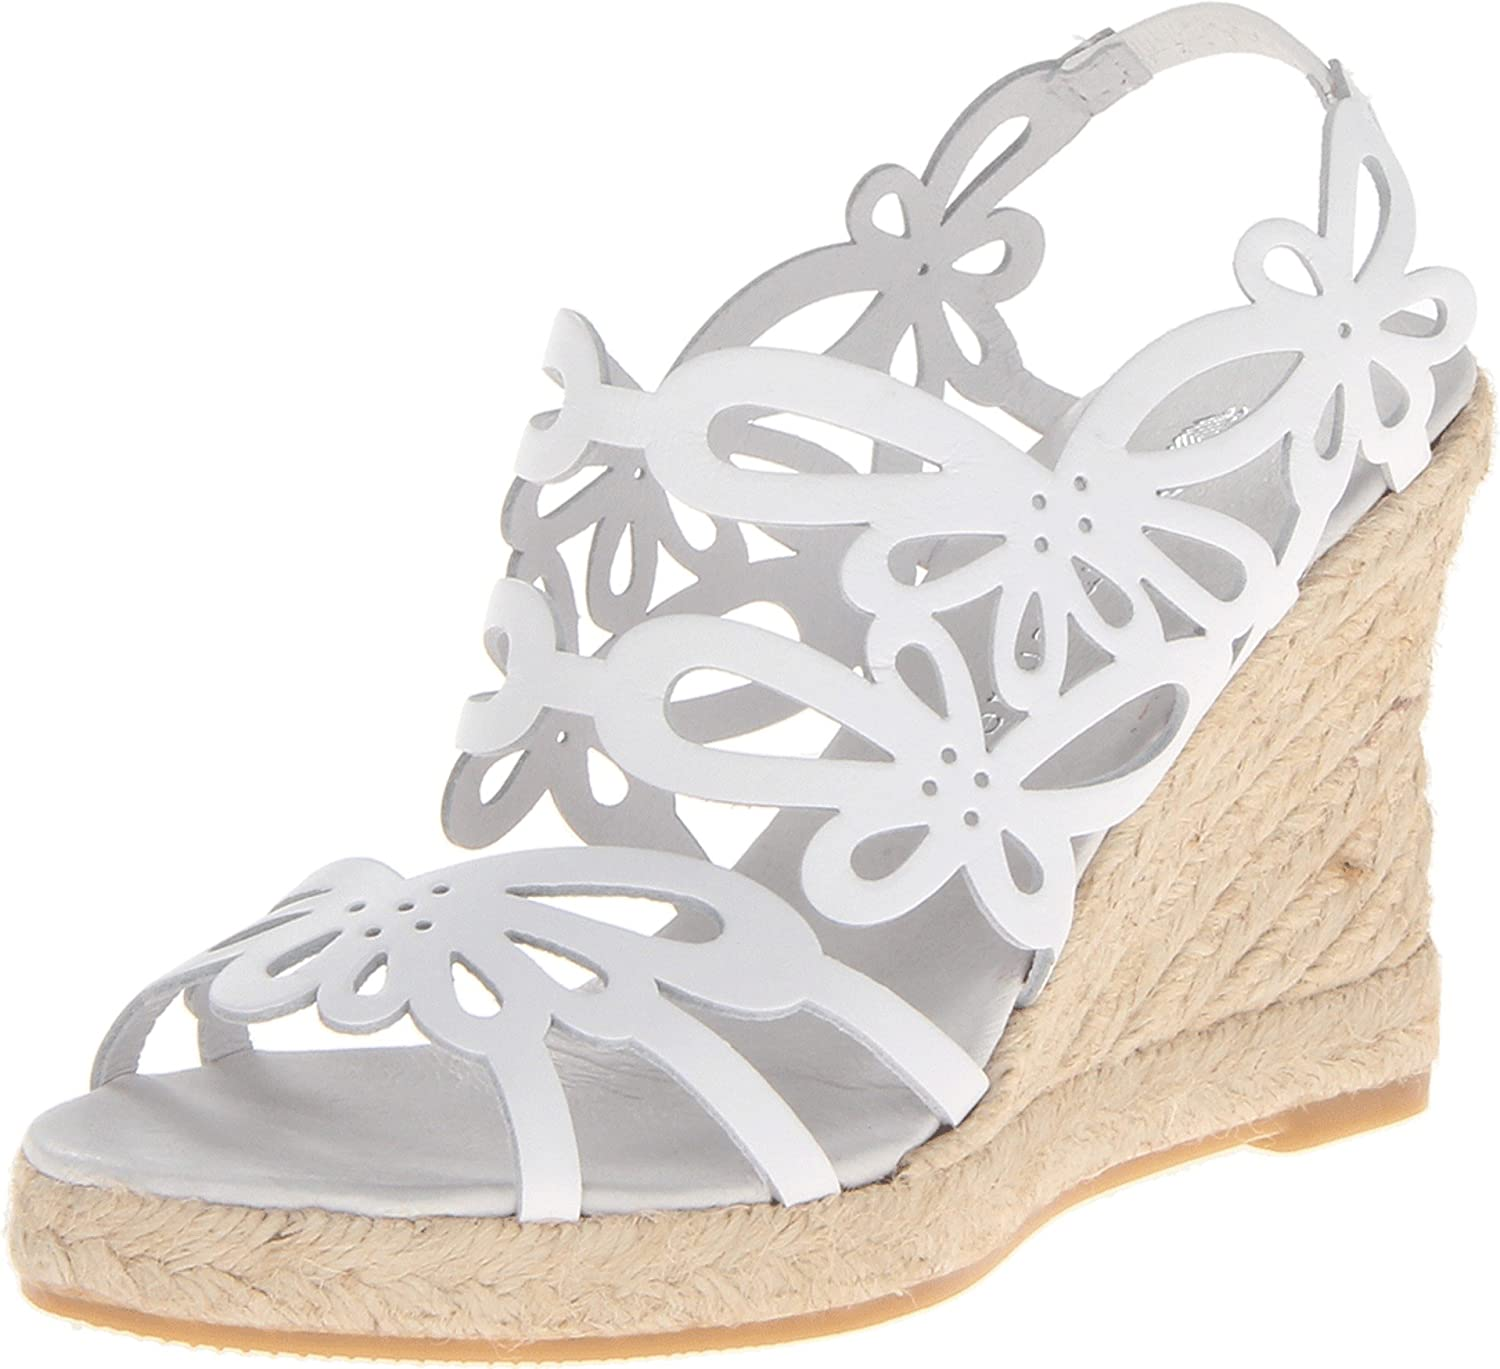 Max 59% OFF Eric Michael At the price of surprise Jillian Women's